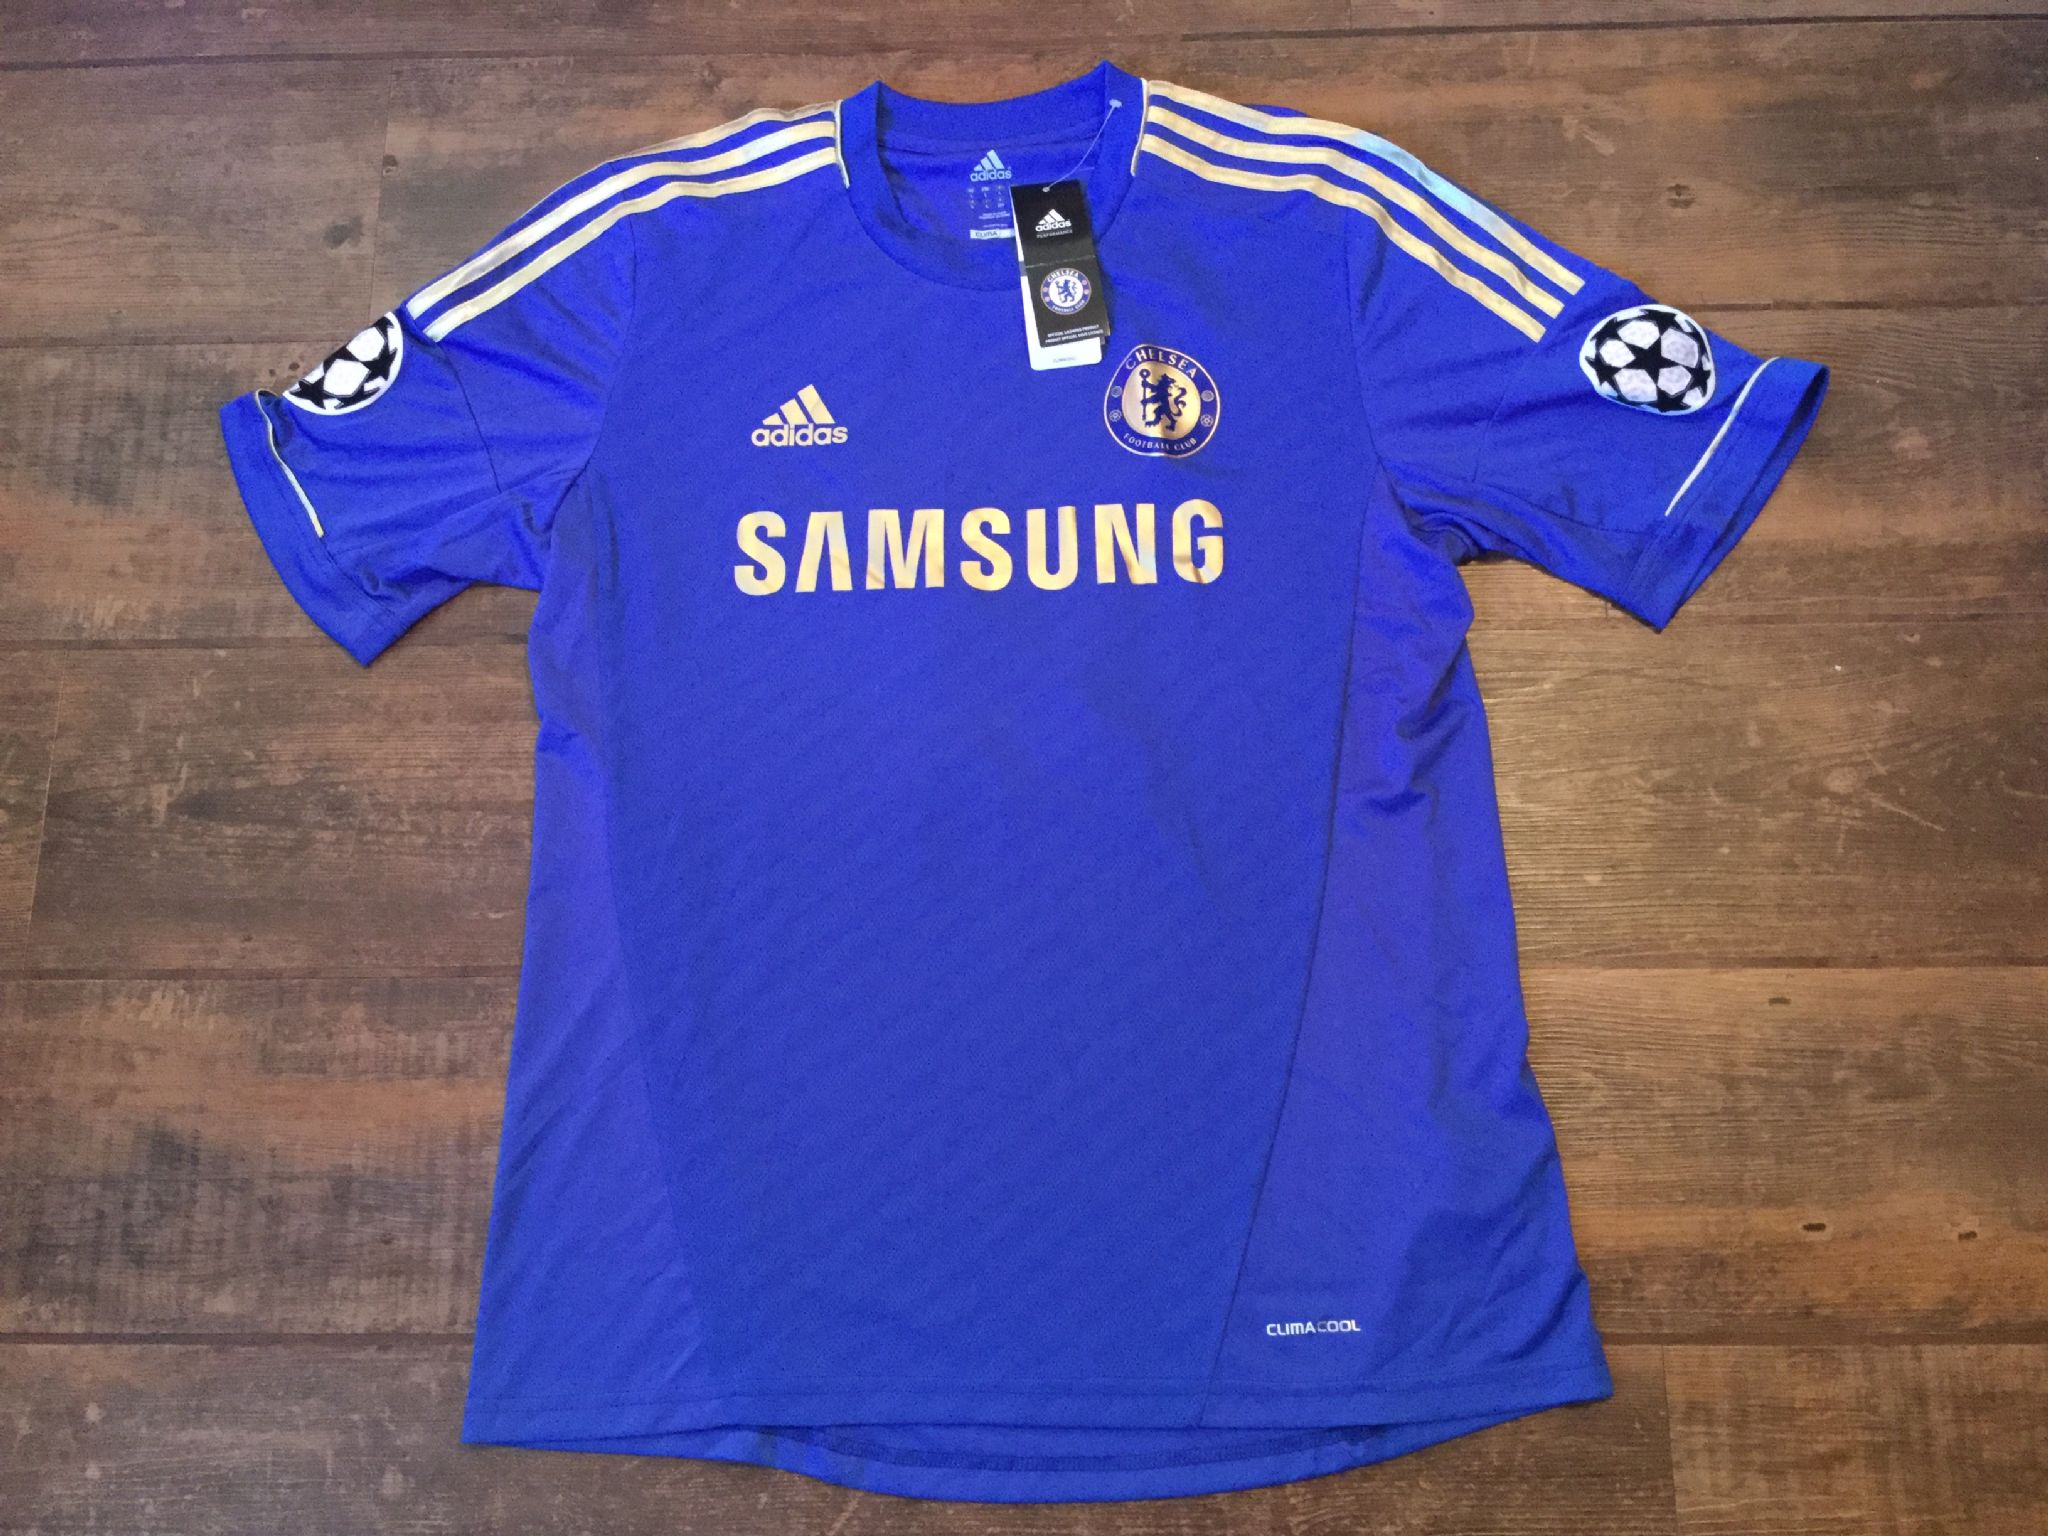 on sale 5af2c 55f69 drogba chelsea shirt on sale > OFF36% Discounts